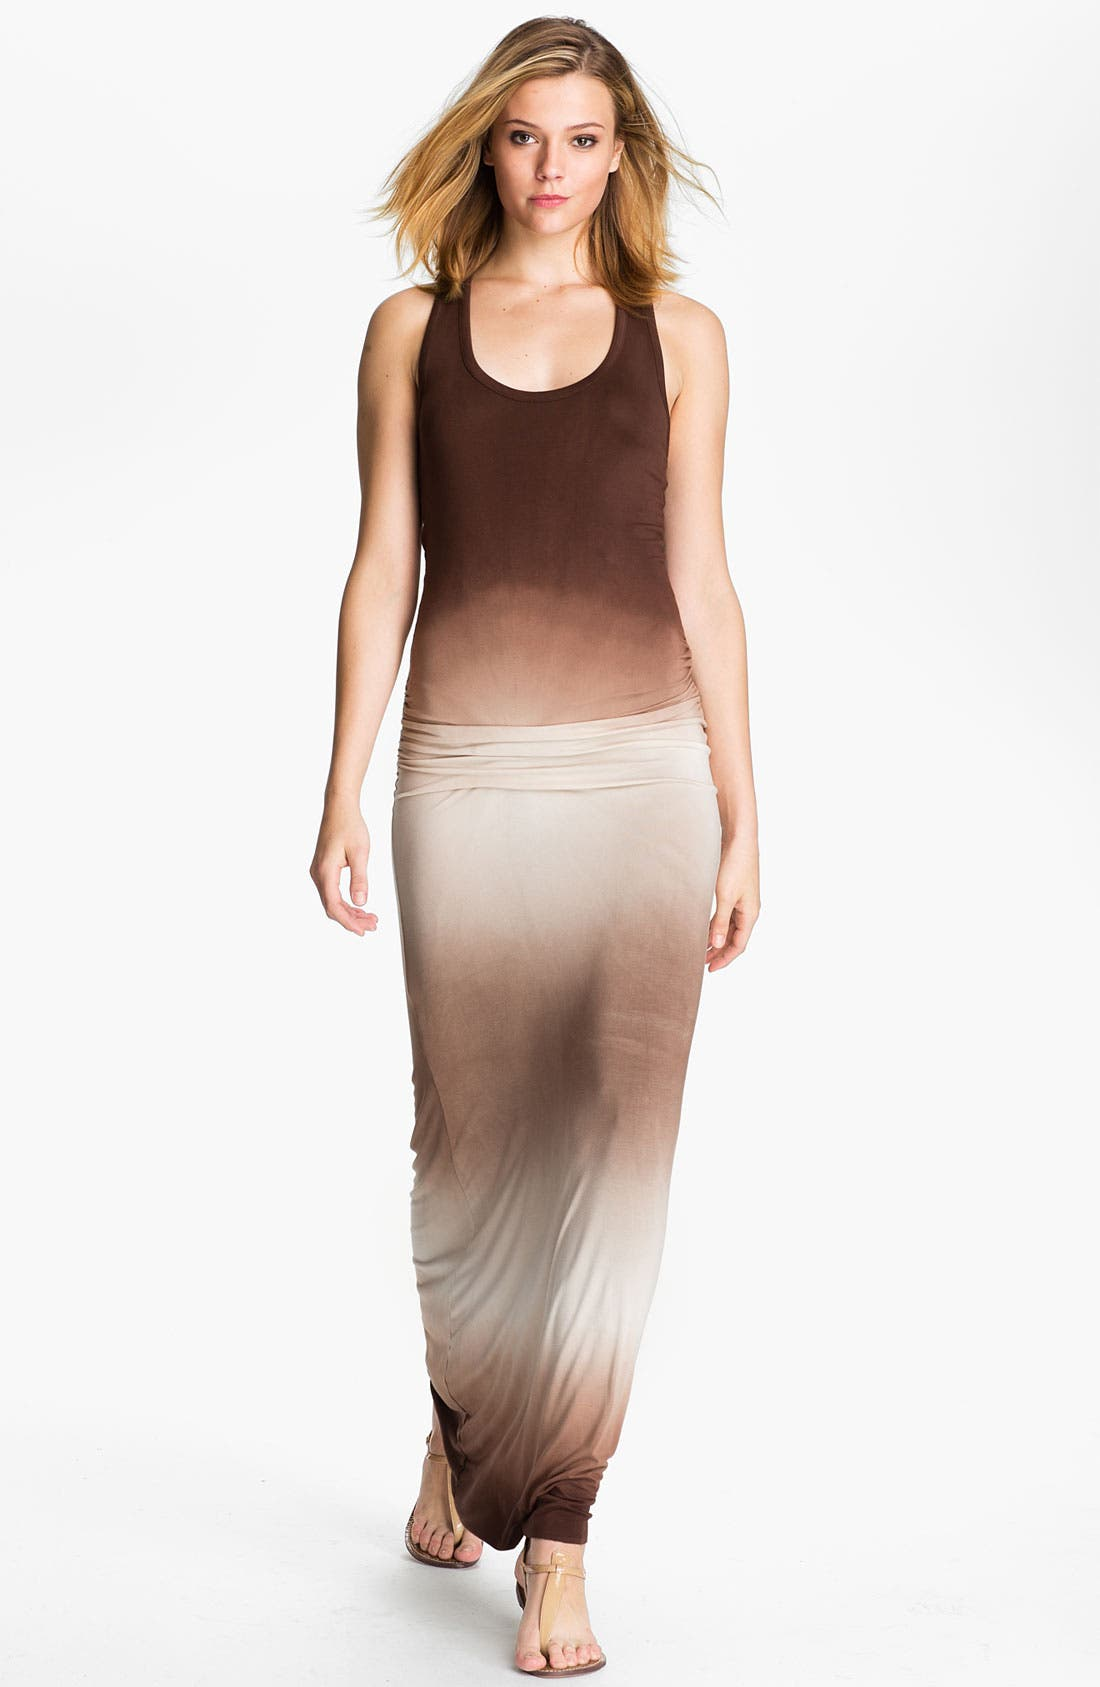 Alternate Image 1 Selected - Young, Fabulous & Broke 'Hamptons' Ombré Maxi Dress